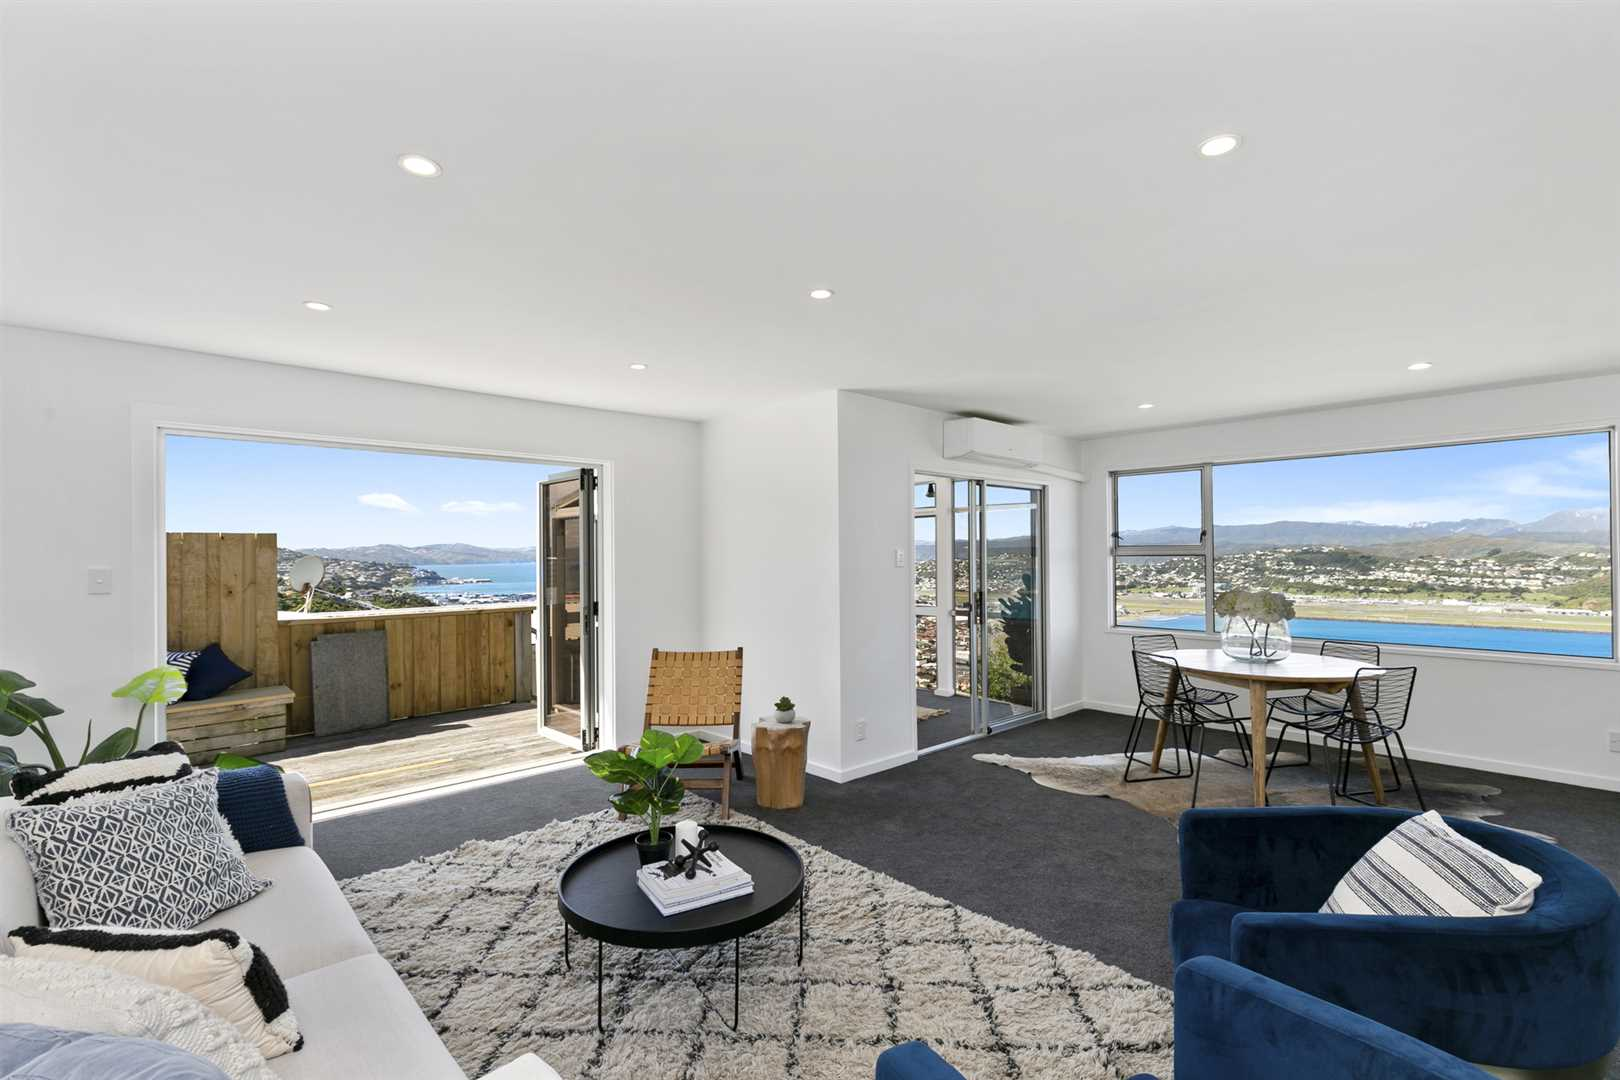 Renovated Home With Stunning Views